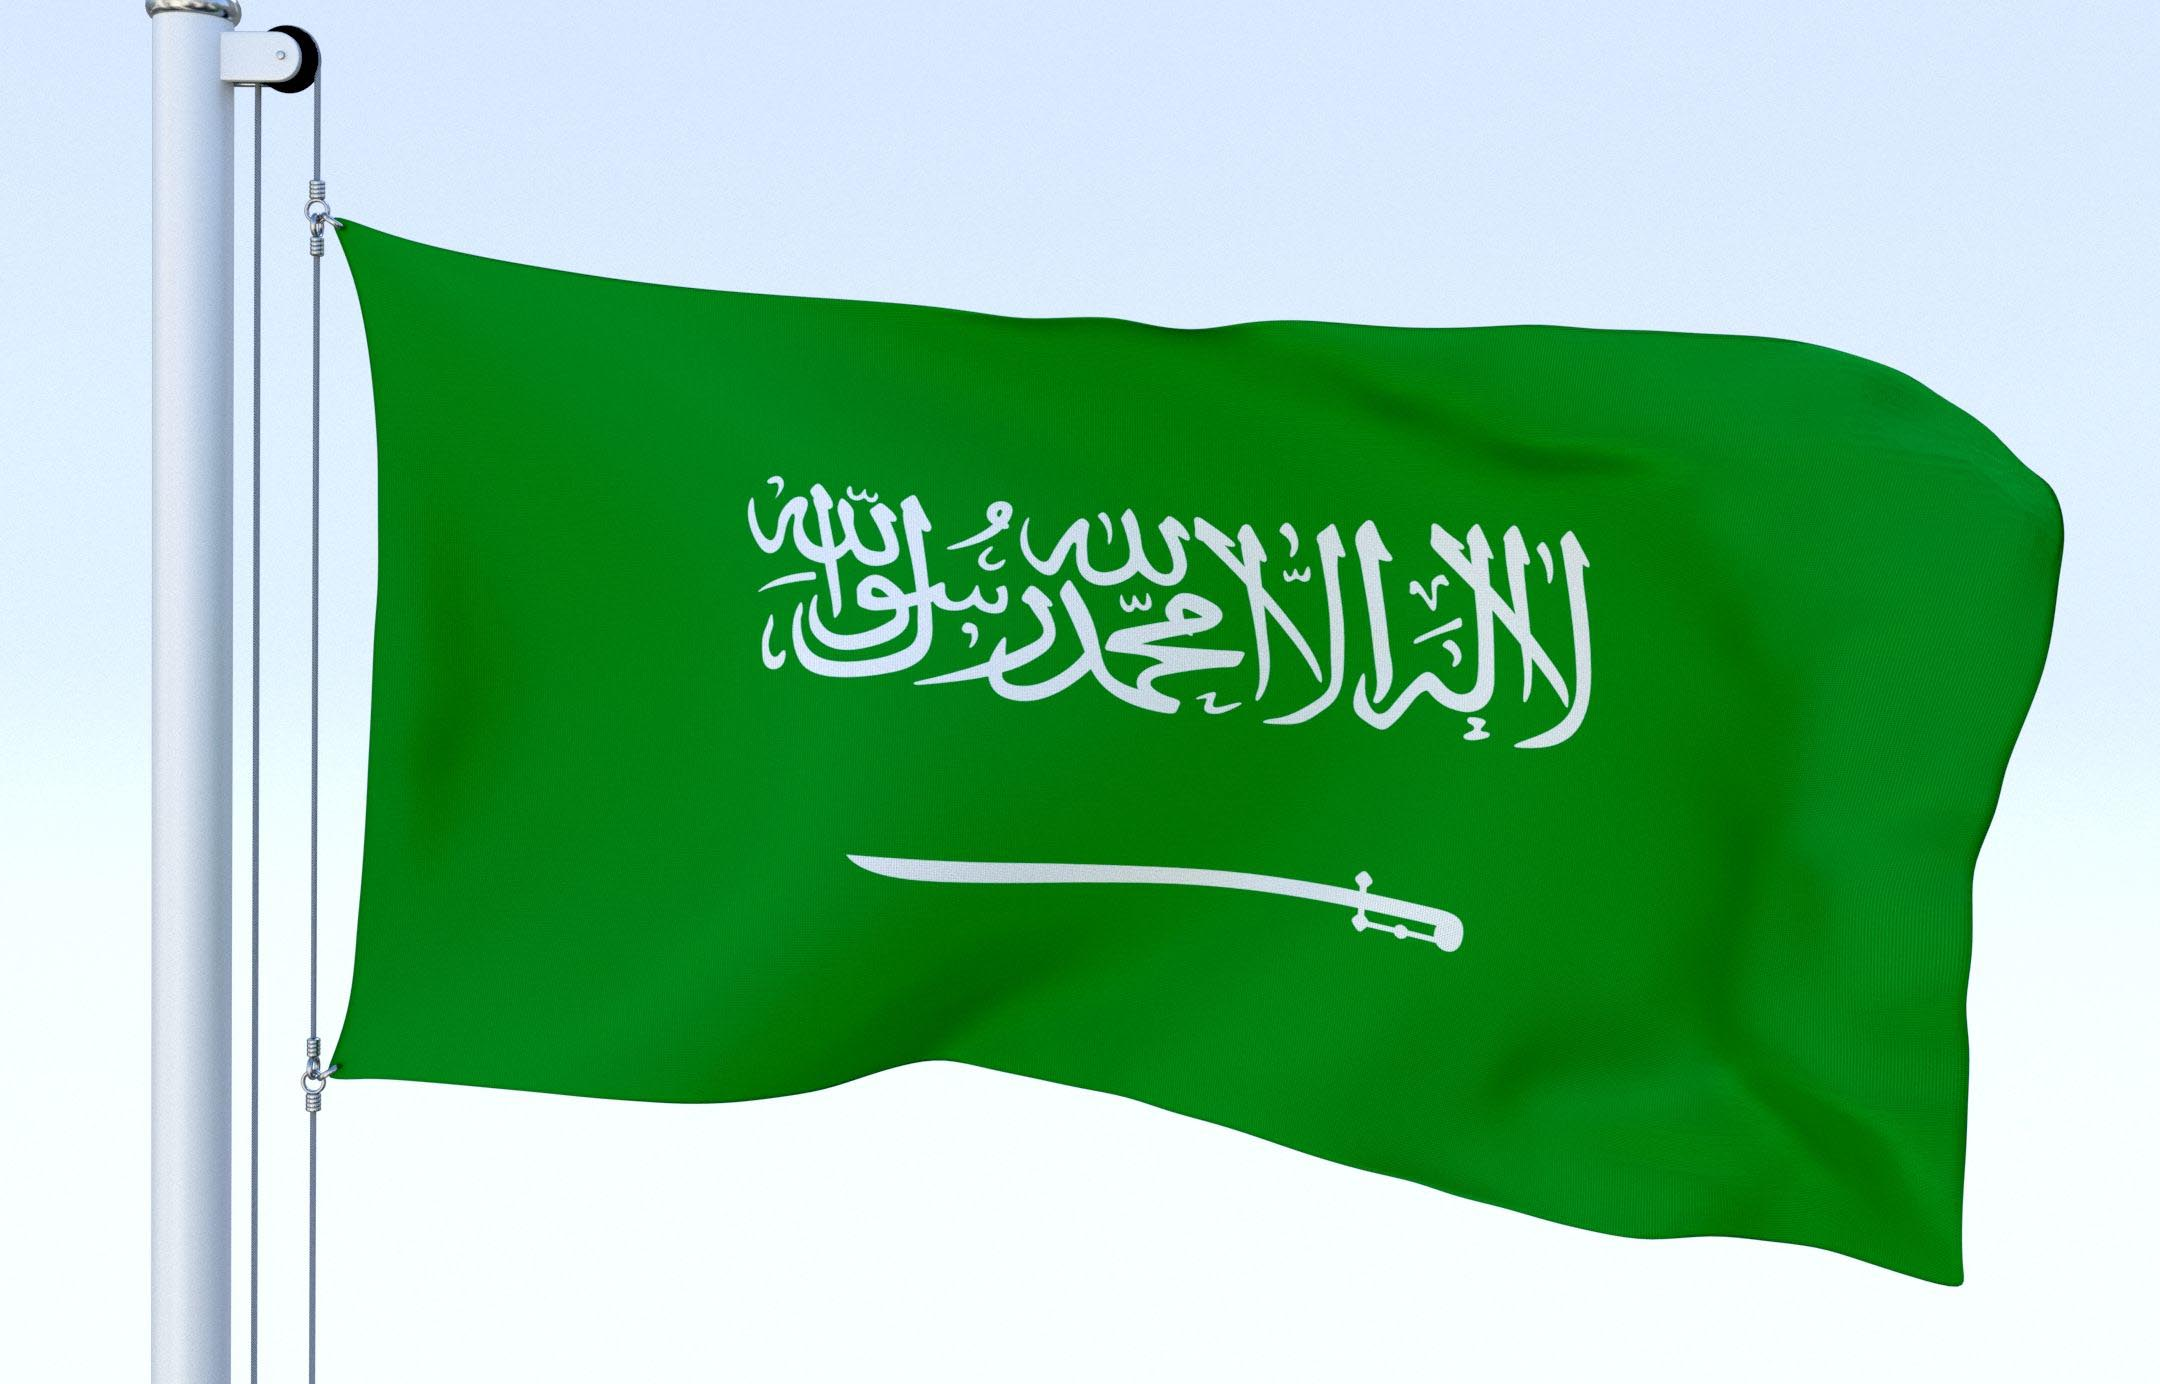 saudi,leading,countries,providing,government,services